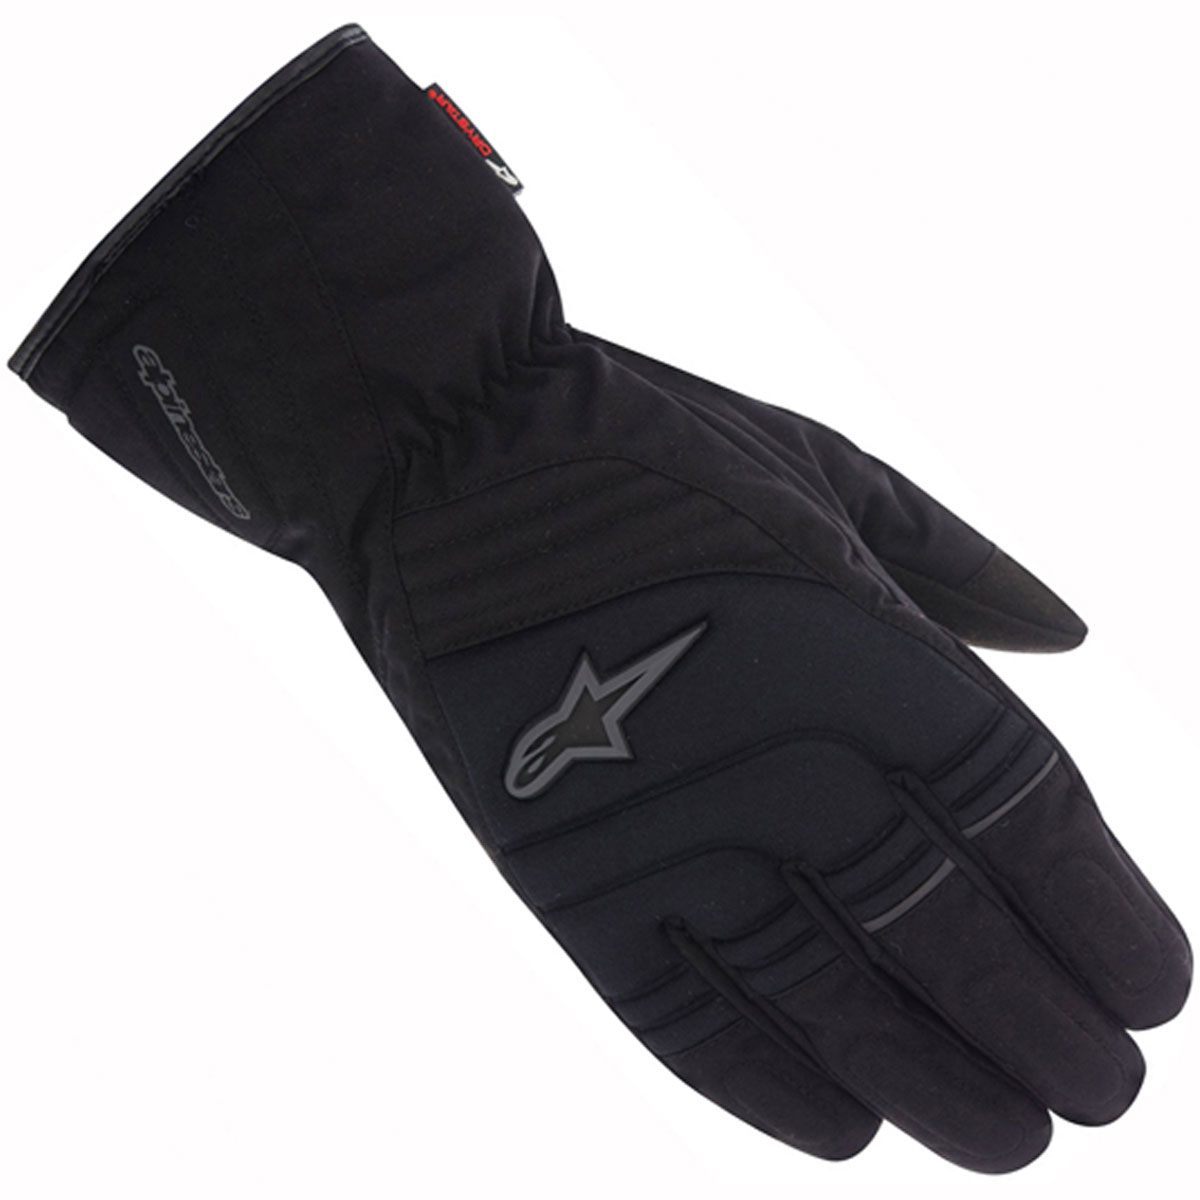 Motorcycle gloves europe - The Alpinestars Transition Gloves